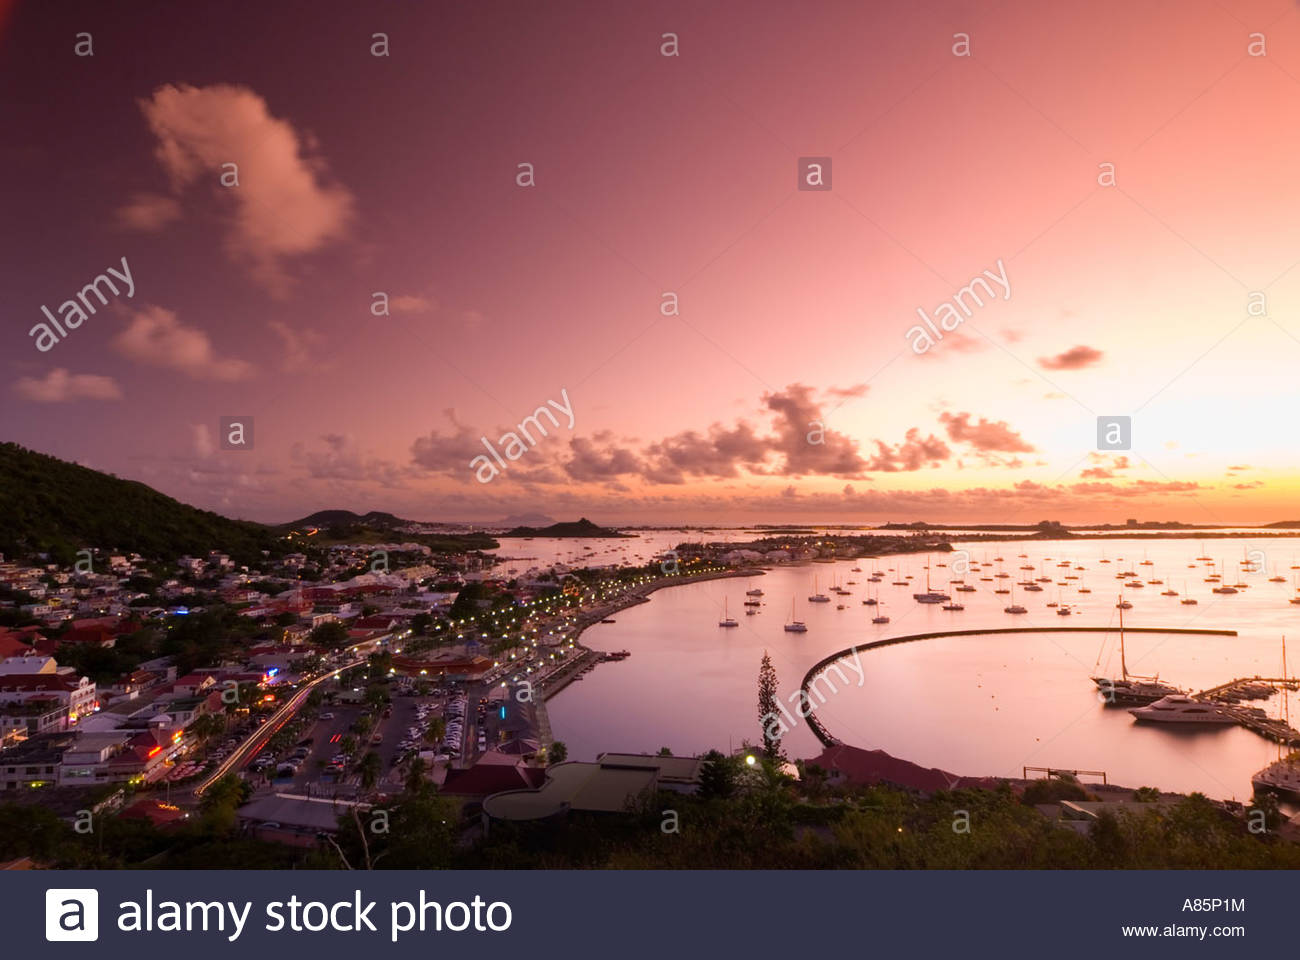 Elevated view of Marigot at sunset, from Fort St Louis, Saint Martin, French Antilles, Leeward Islands, Caribbean. - Stock Image